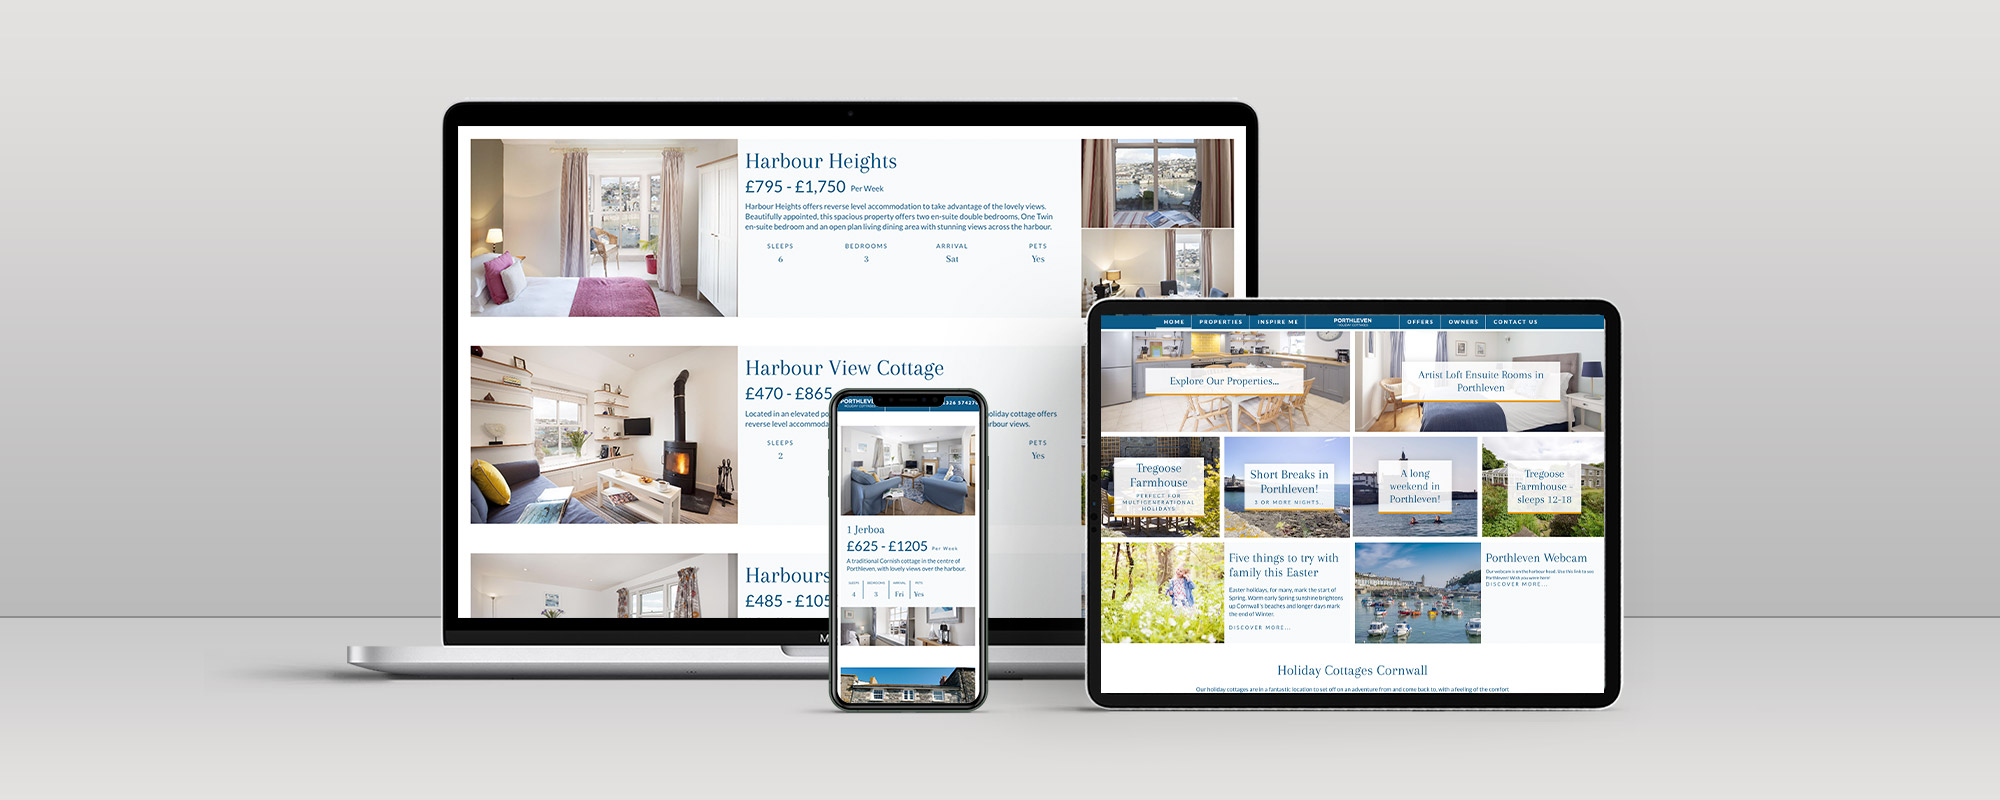 Porthleven Holiday Cottages Website Design on 3 Devices